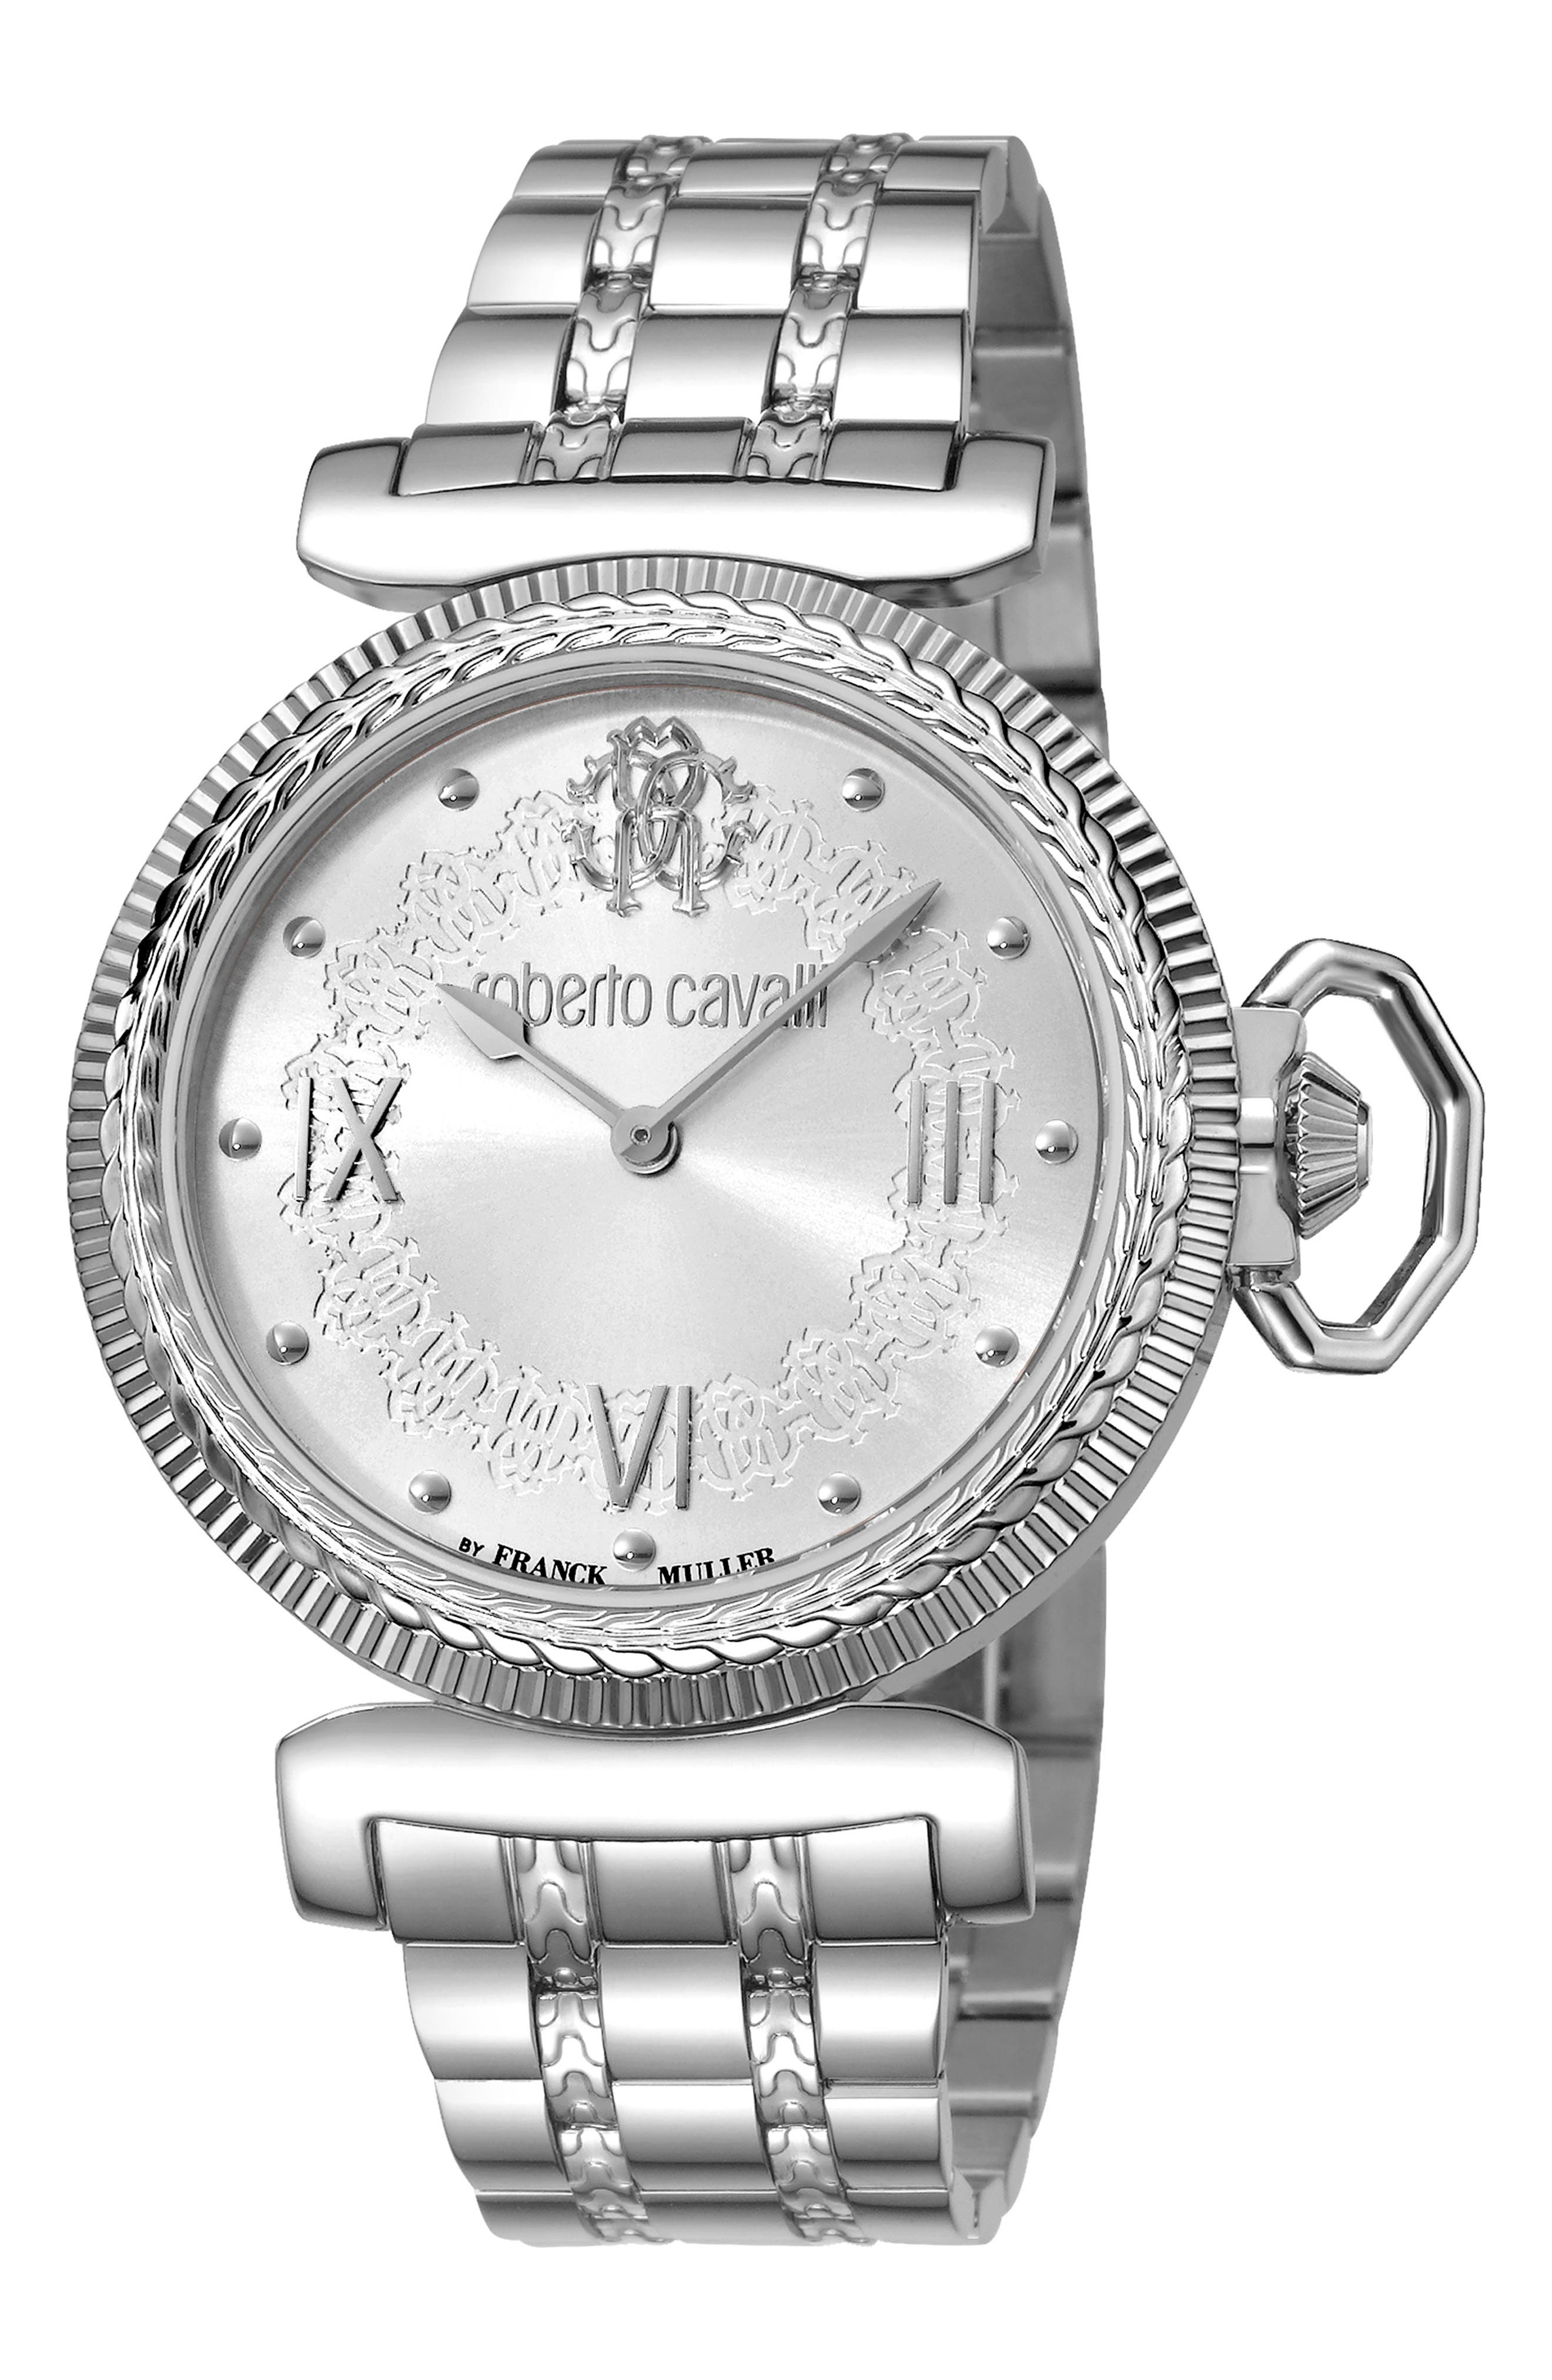 ROBERTO CAVALLI BY FRANCK MULLER Classic Bracelet Watch, 38Mm in Silver